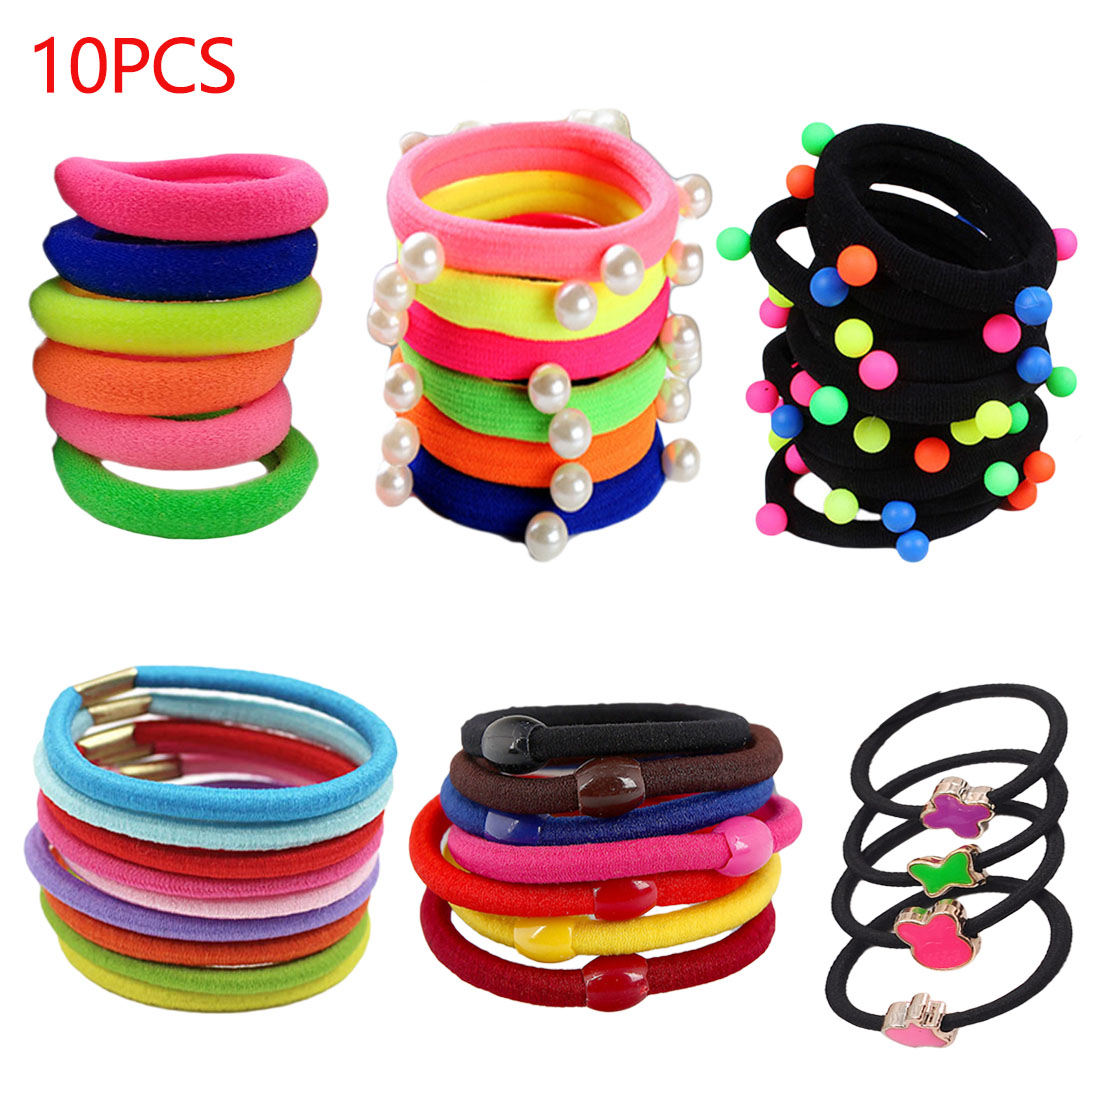 Colorful 10pcs/lot Elastic HairBands Seamless Tie Gum Maker Ponytail Holder Ropes Rings Headband Hair Accessories for Girls Kids akwzmly 20 pcs girls headband flower hair elastic bands scrunchy ponytail holder accessories bow animals pattern ropes ties